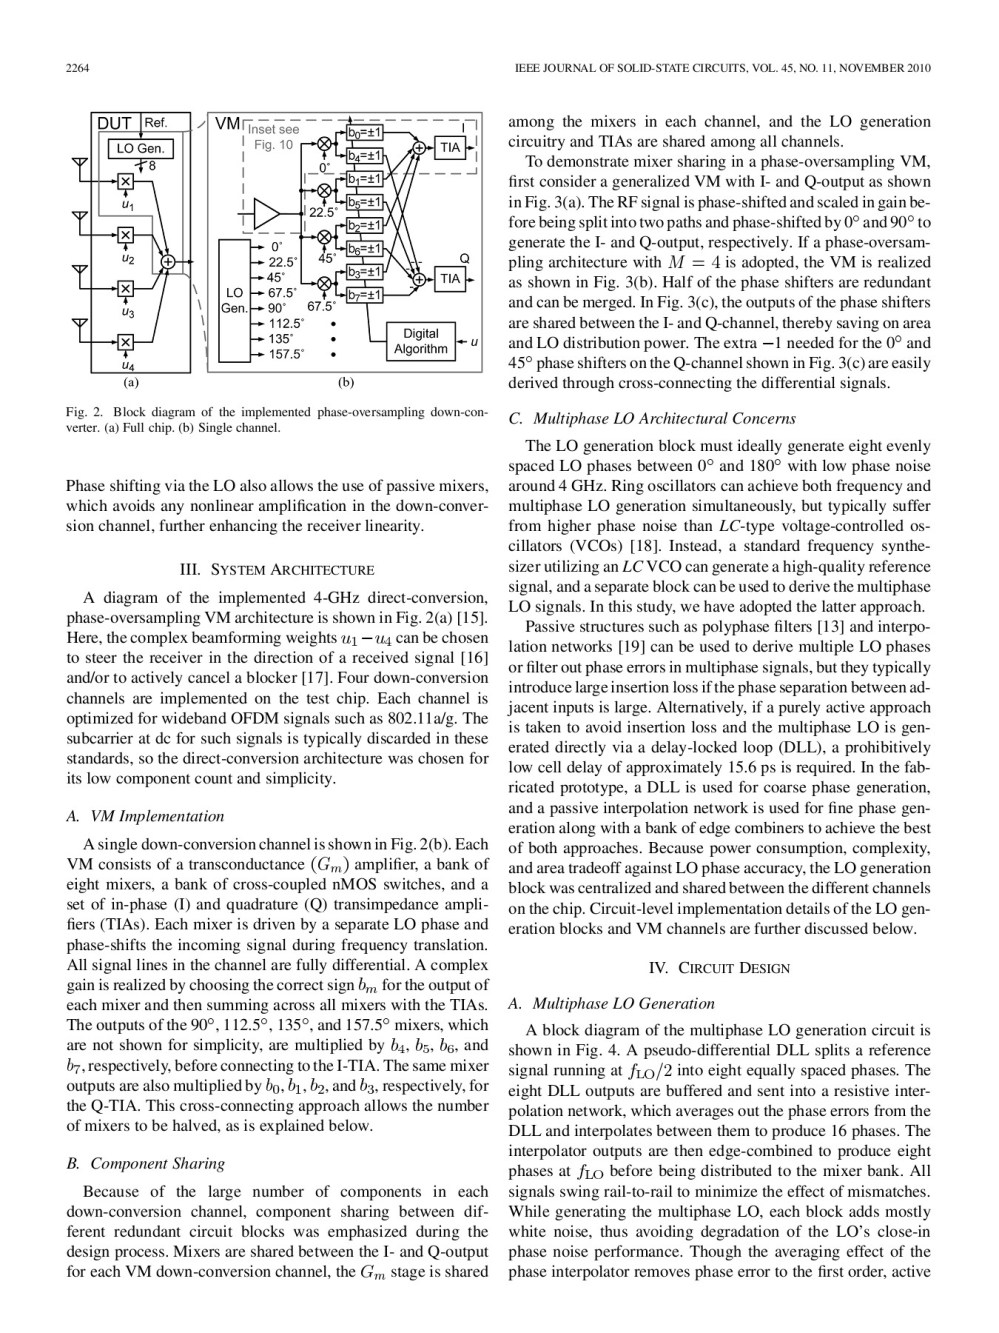 medium resolution of 2262 ieee journal of solid state circuits vol 45 no 11 november 2010 a four channel beamforming down converter in 90 nm cmos utilizing phase